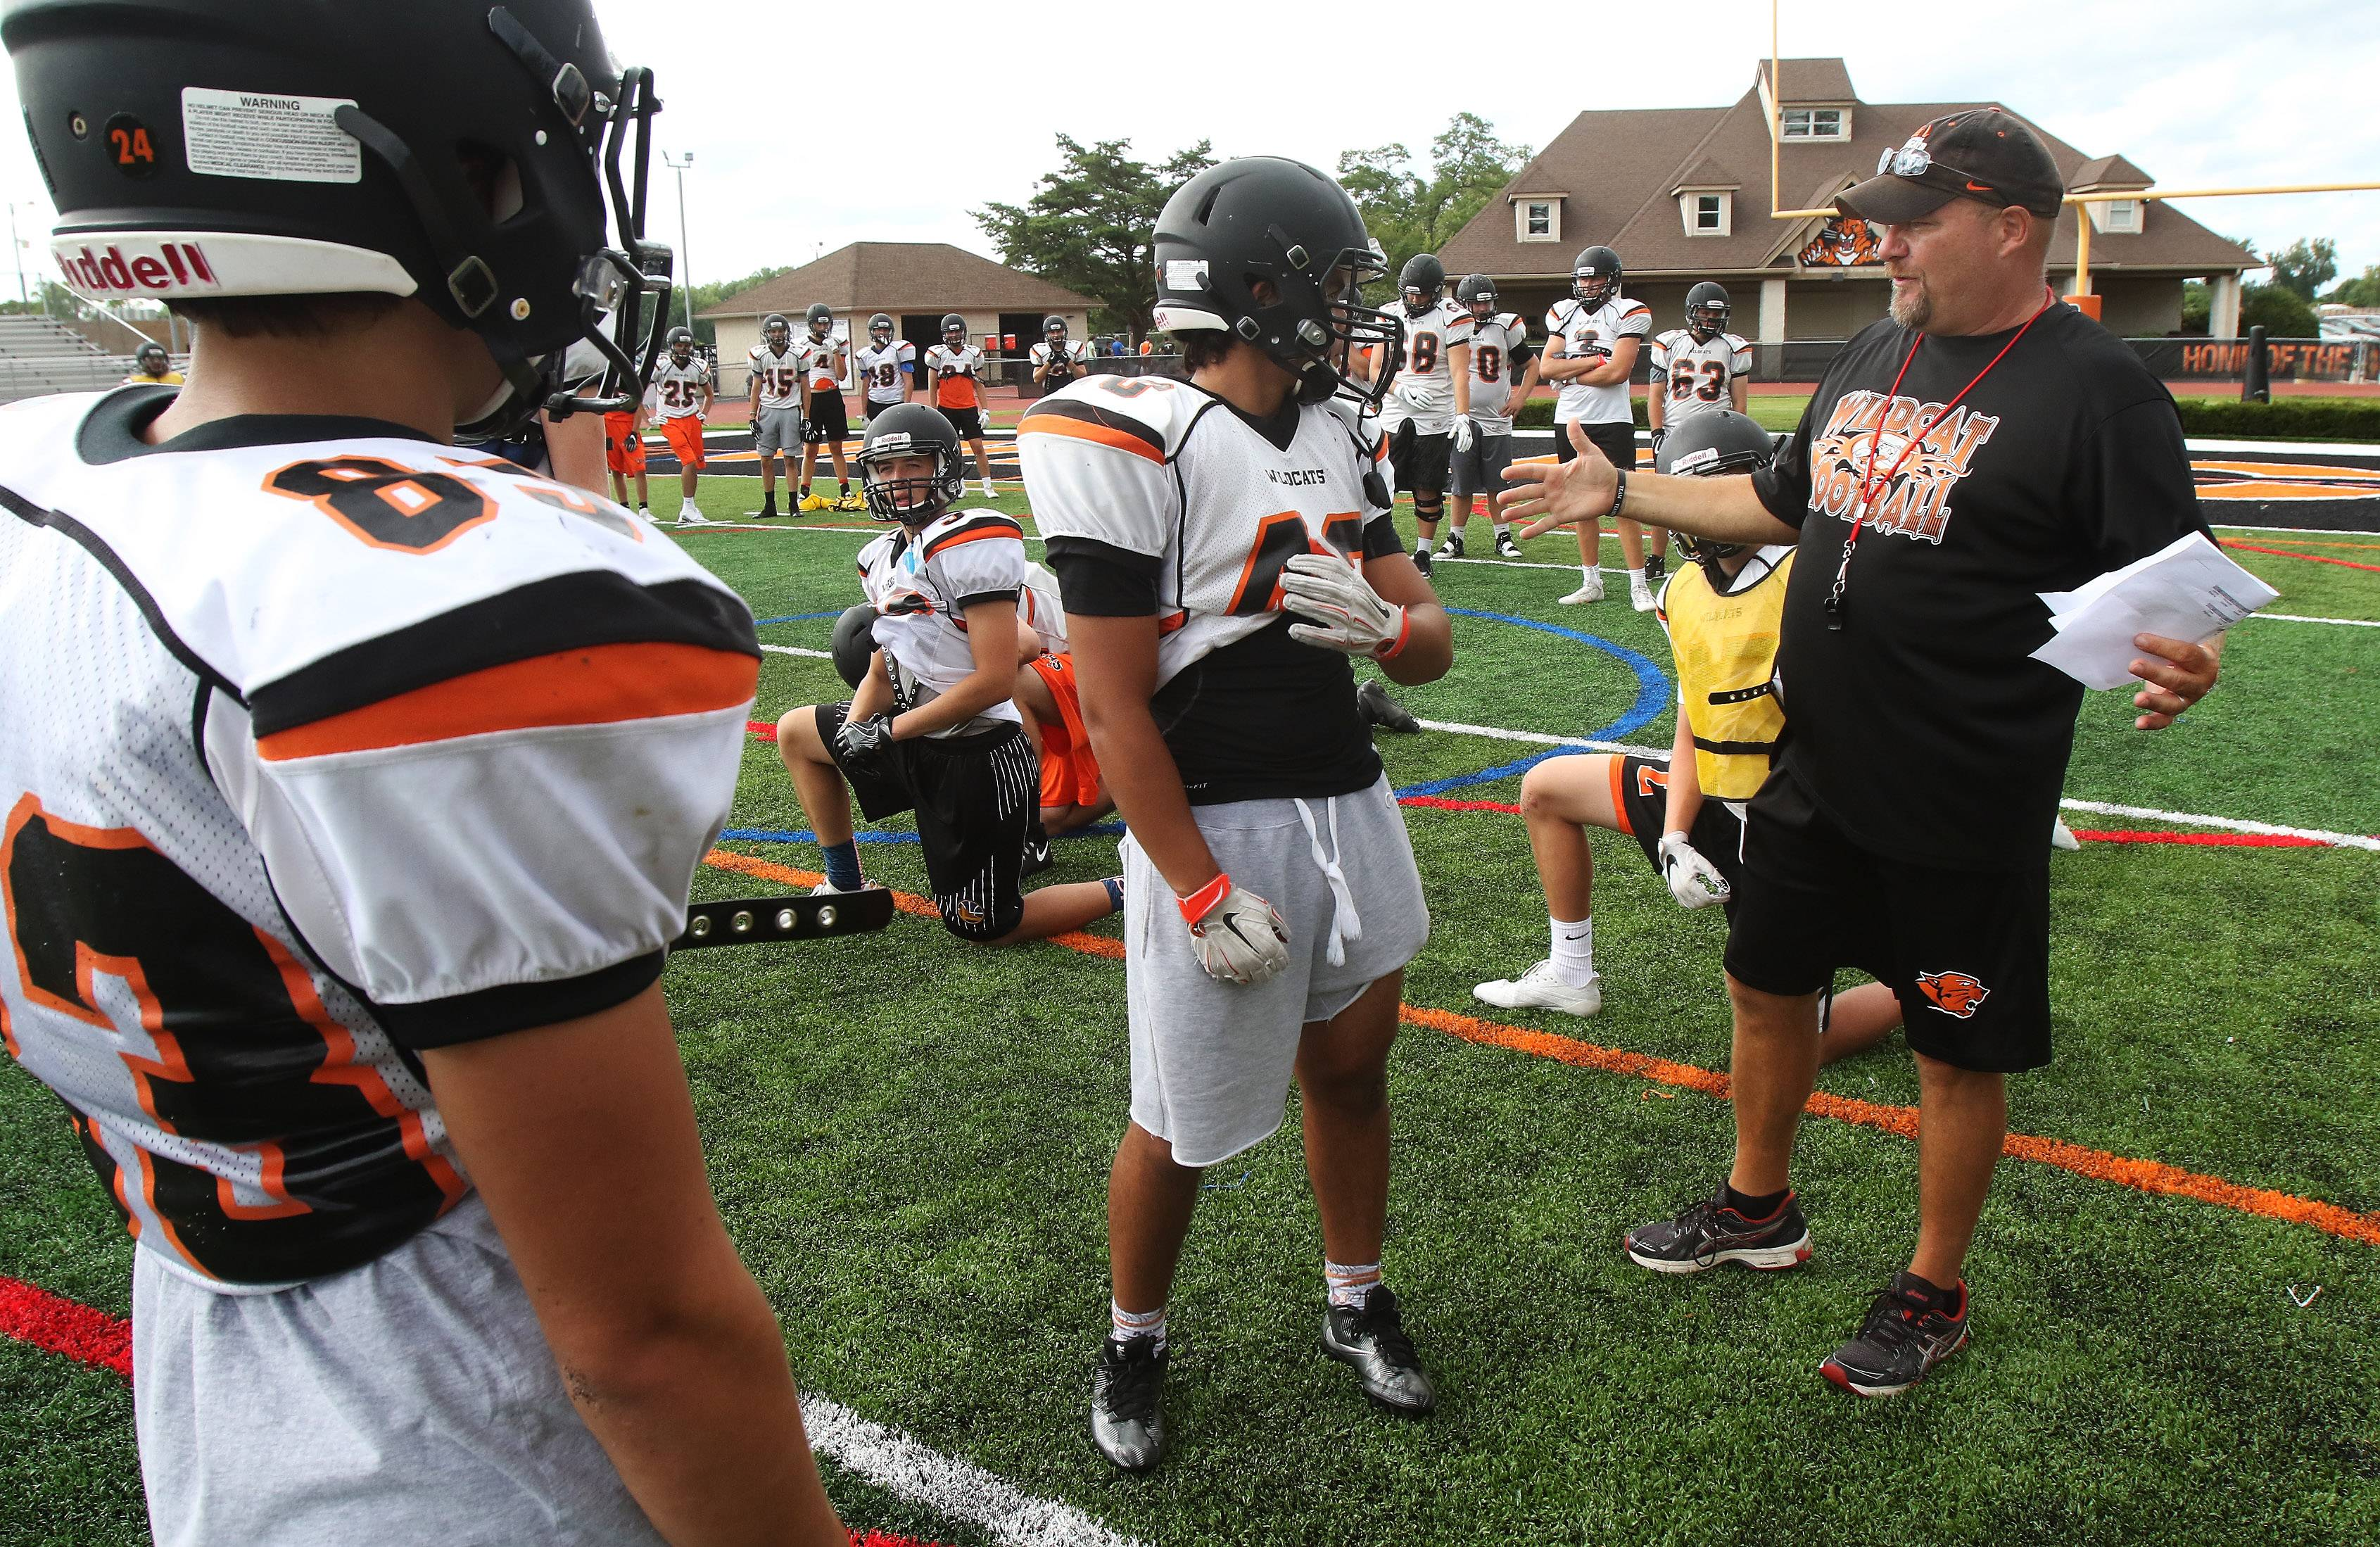 Coach Mike Jones discusses an offensive formation during football practice at Libertyville.